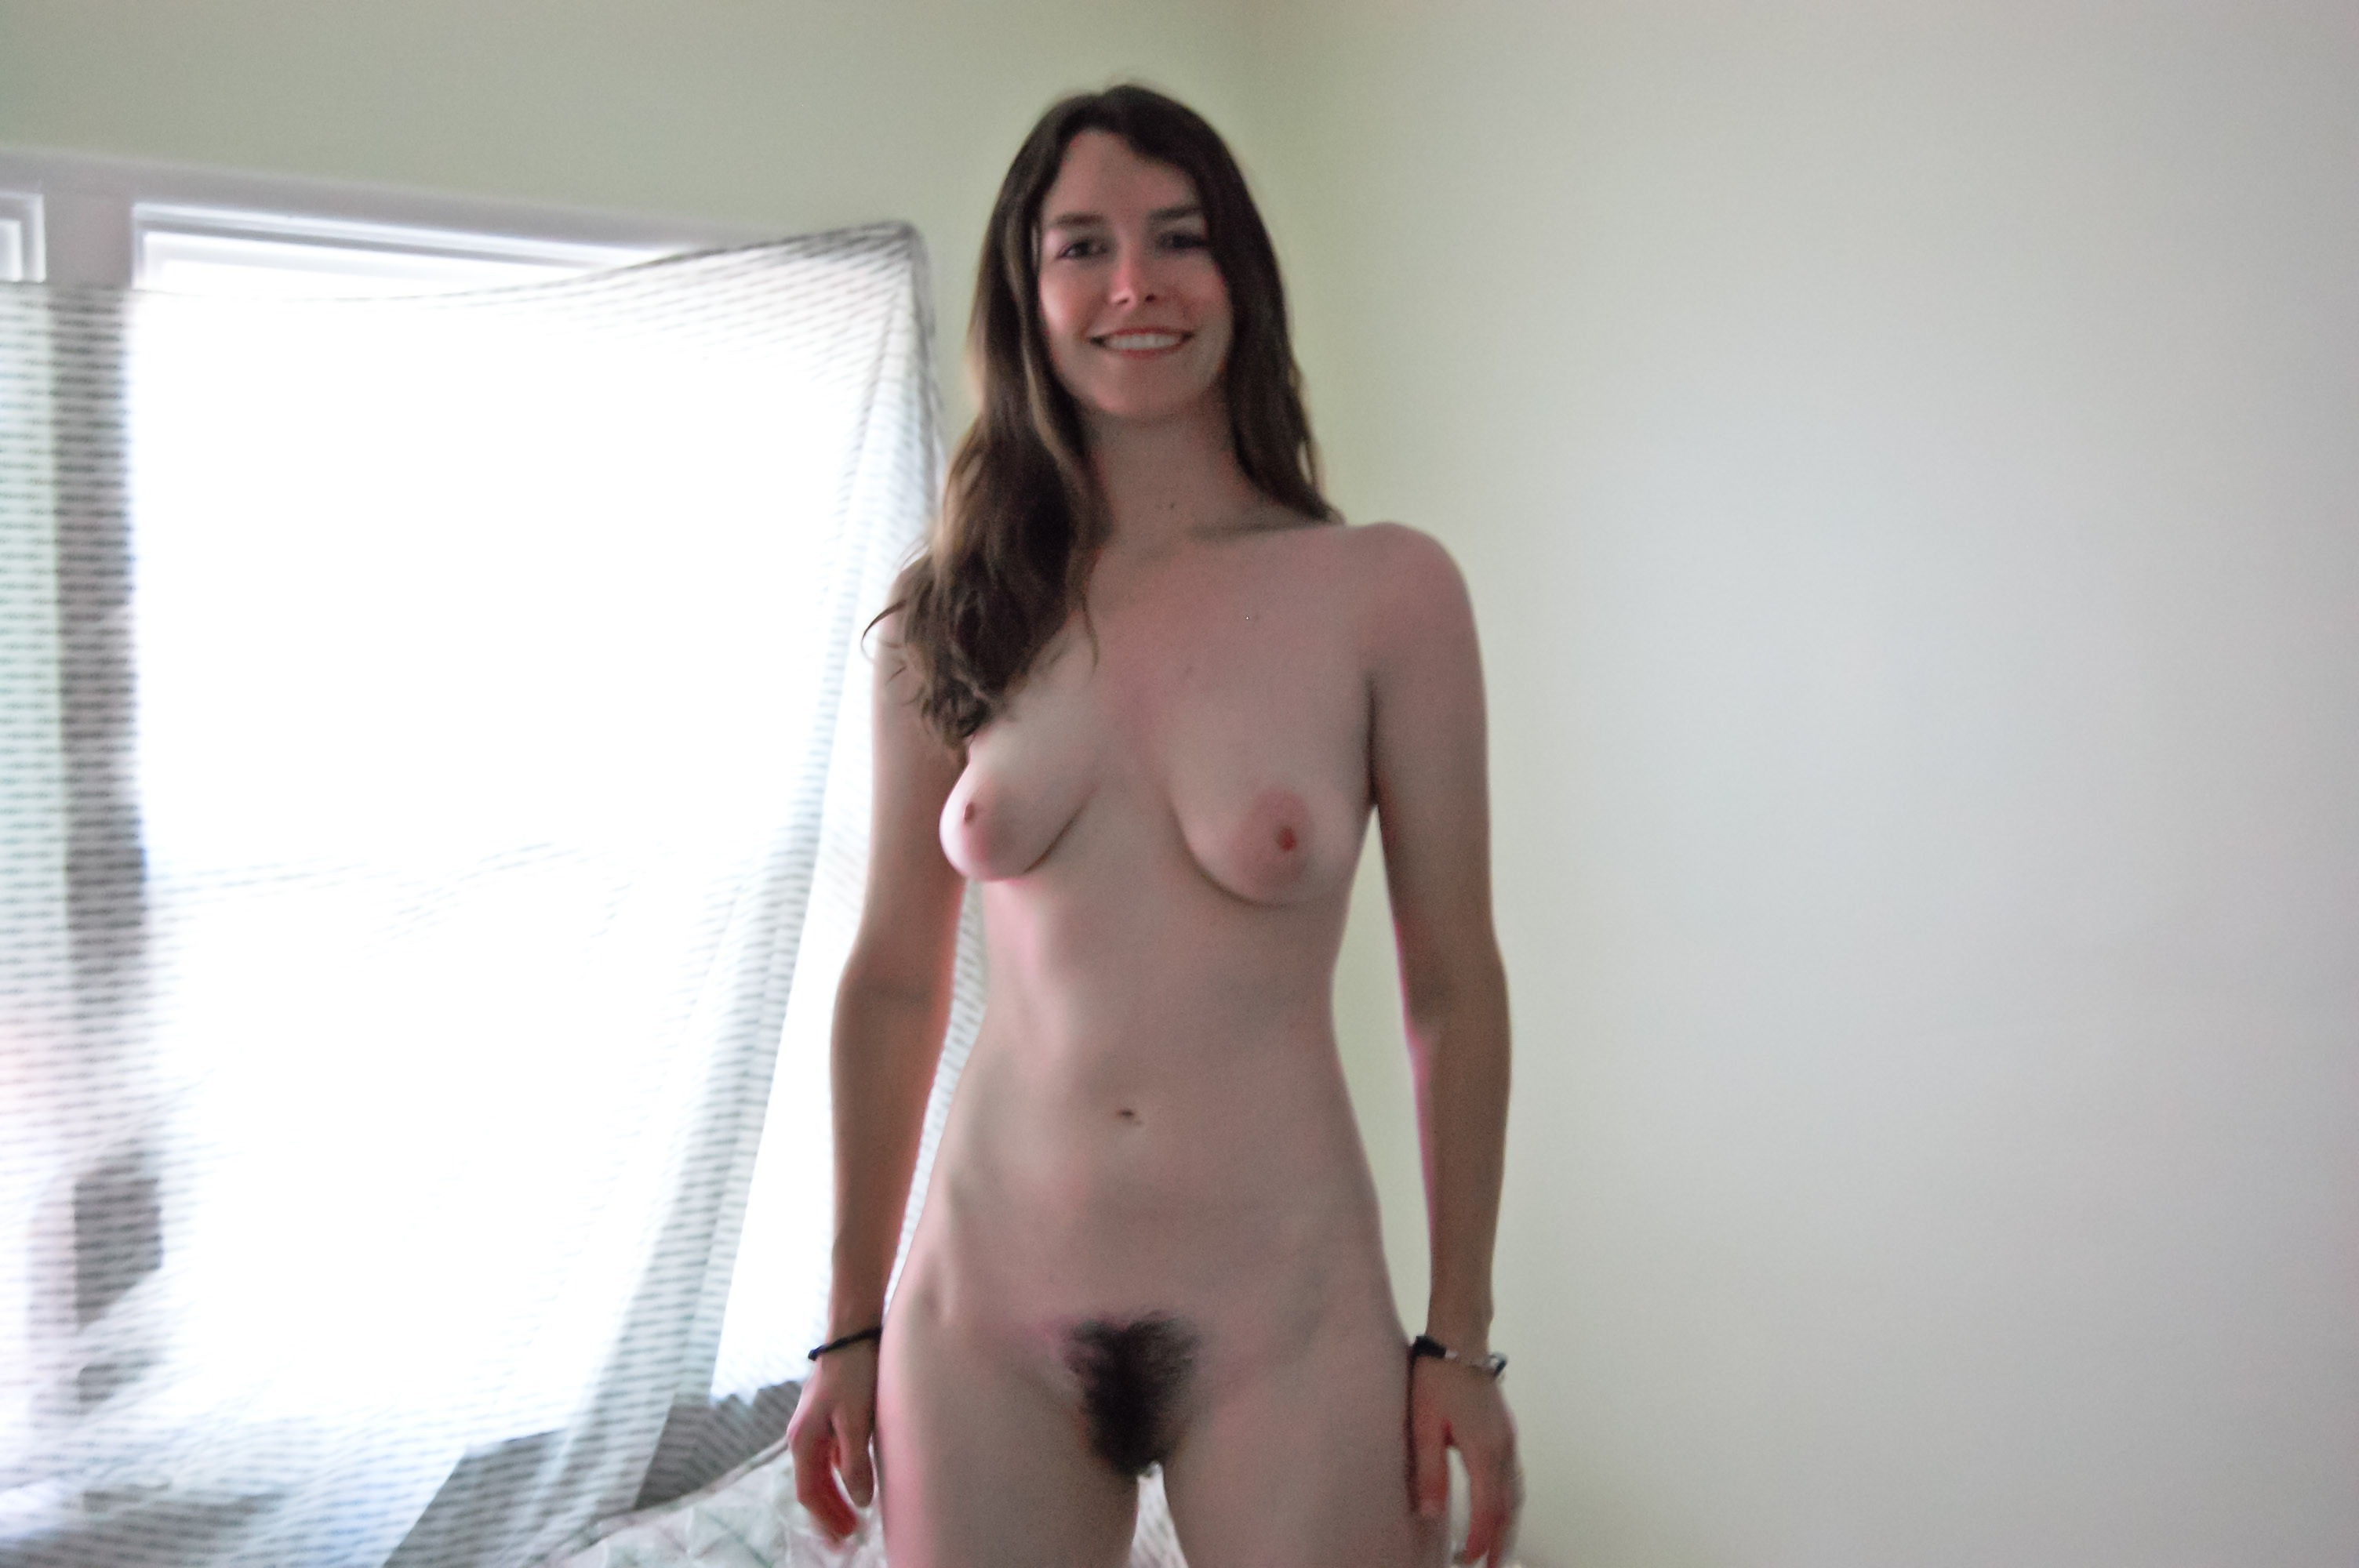 loni punani free porn tube watch download and cum loni #amateur #brunette #caption #exposed #homemade #hot #humiliation #mature #milf #nude #sexy #tits #voyeur #webslut #wife